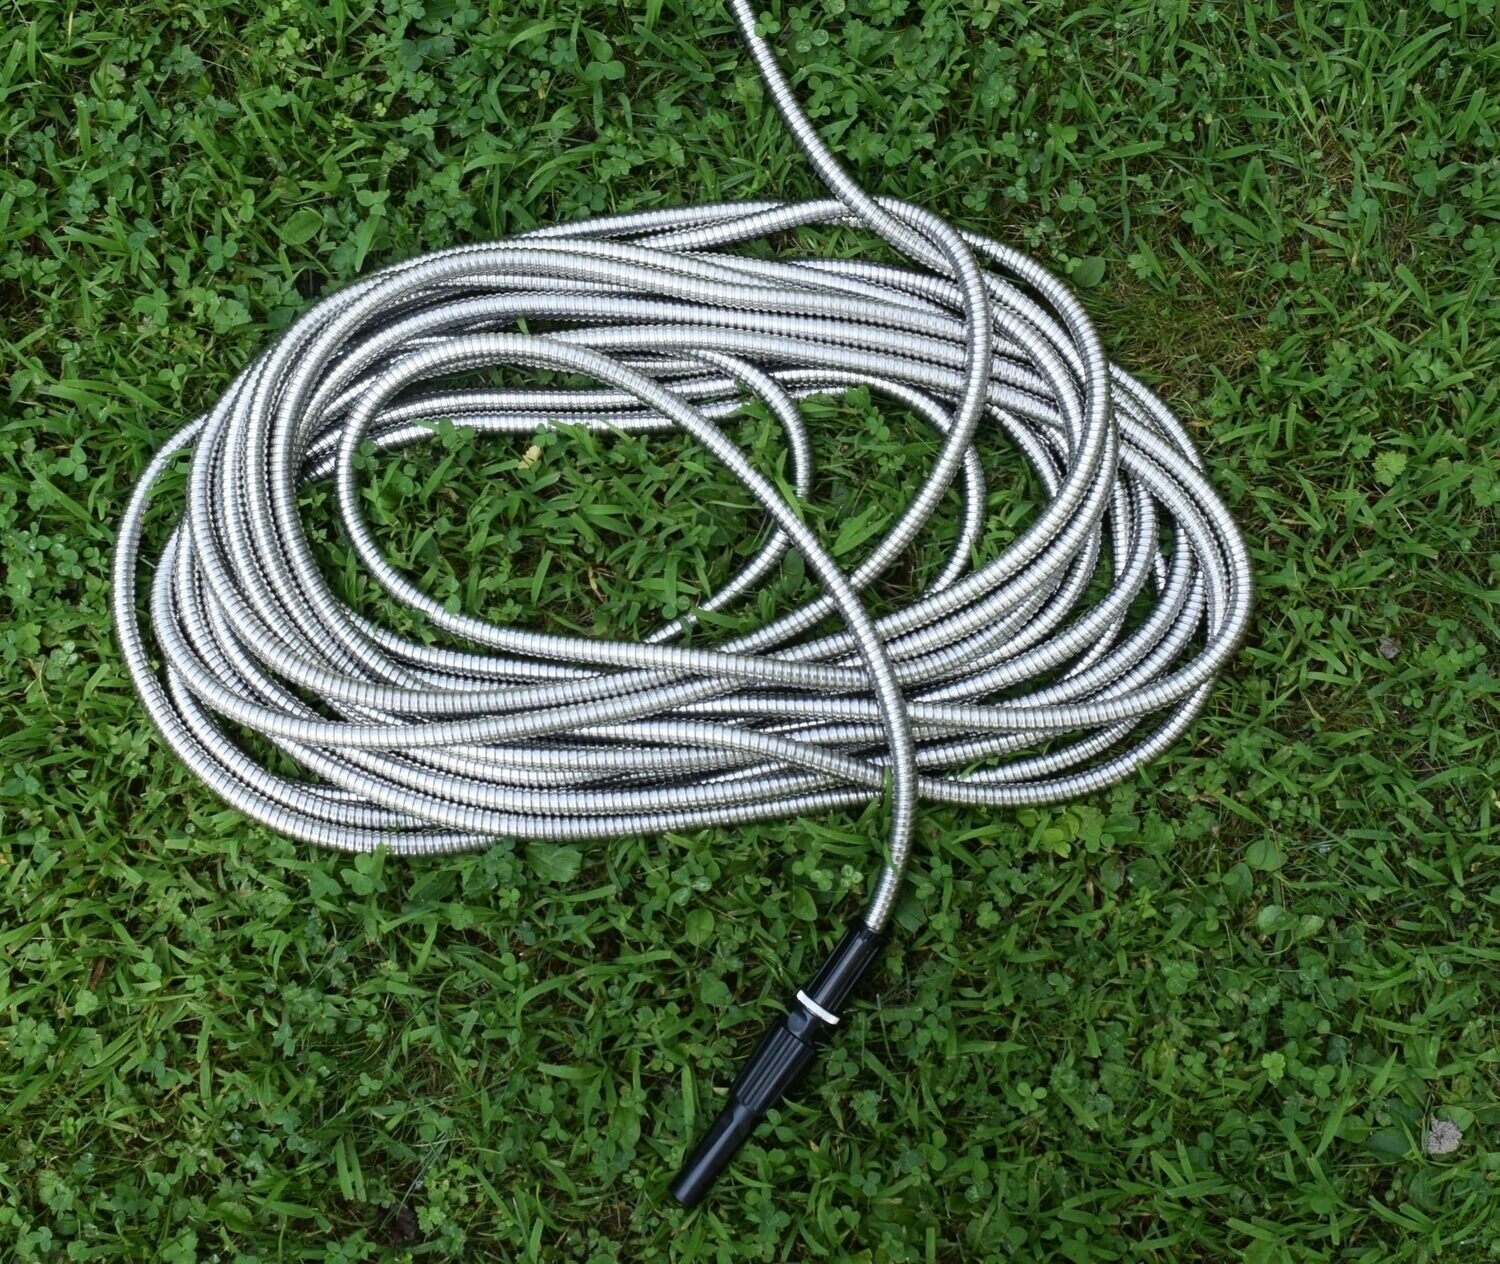 Stainless Steel Hose 50'